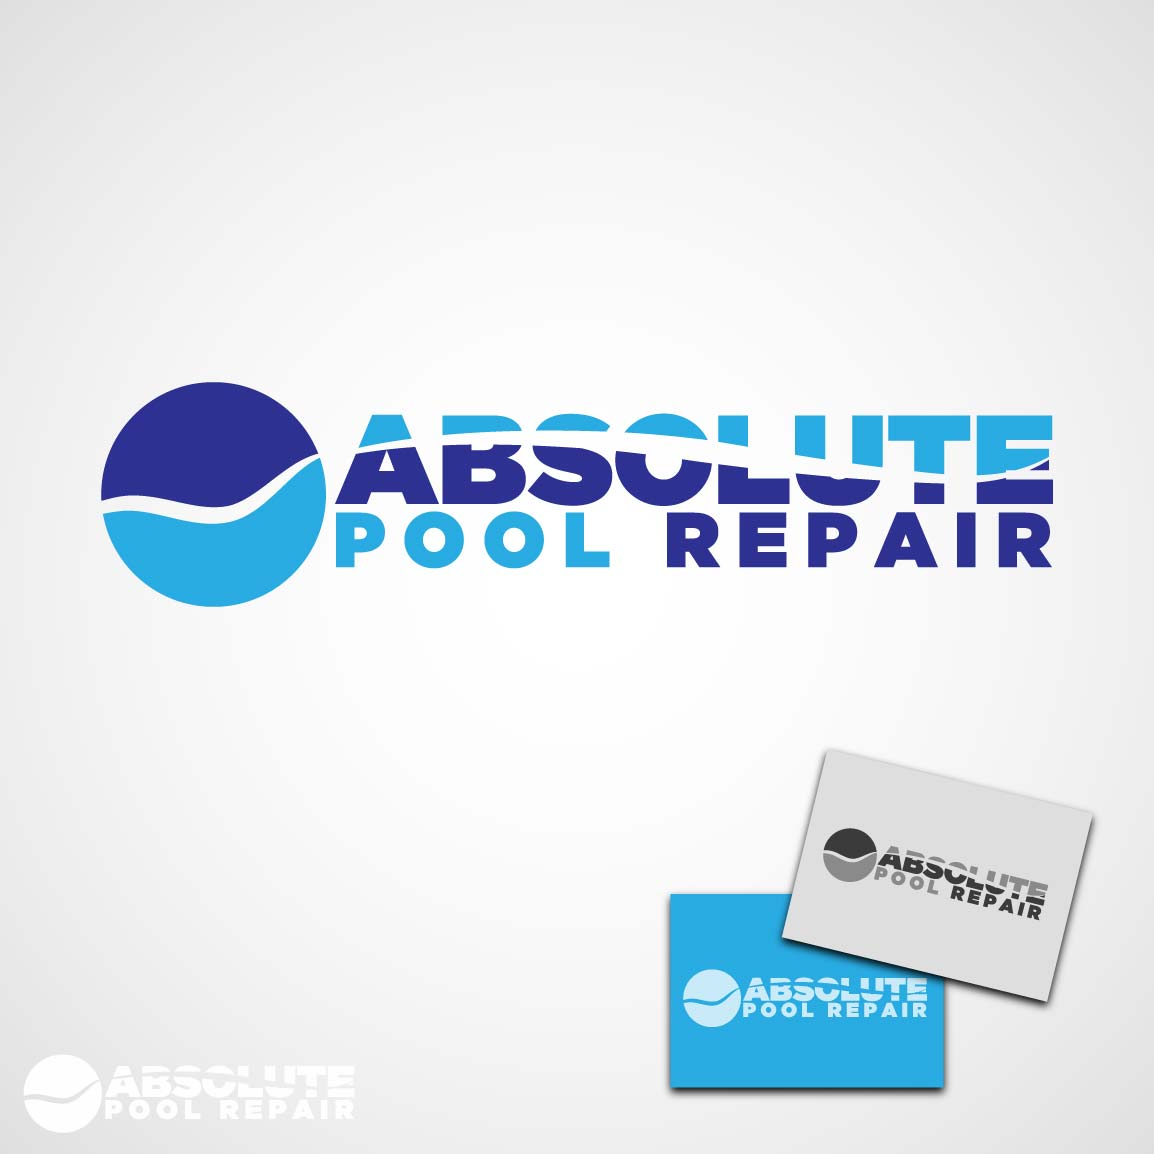 124 Professional Printer Logo Designs For Absolute Pool Repair A Printer Business In United States